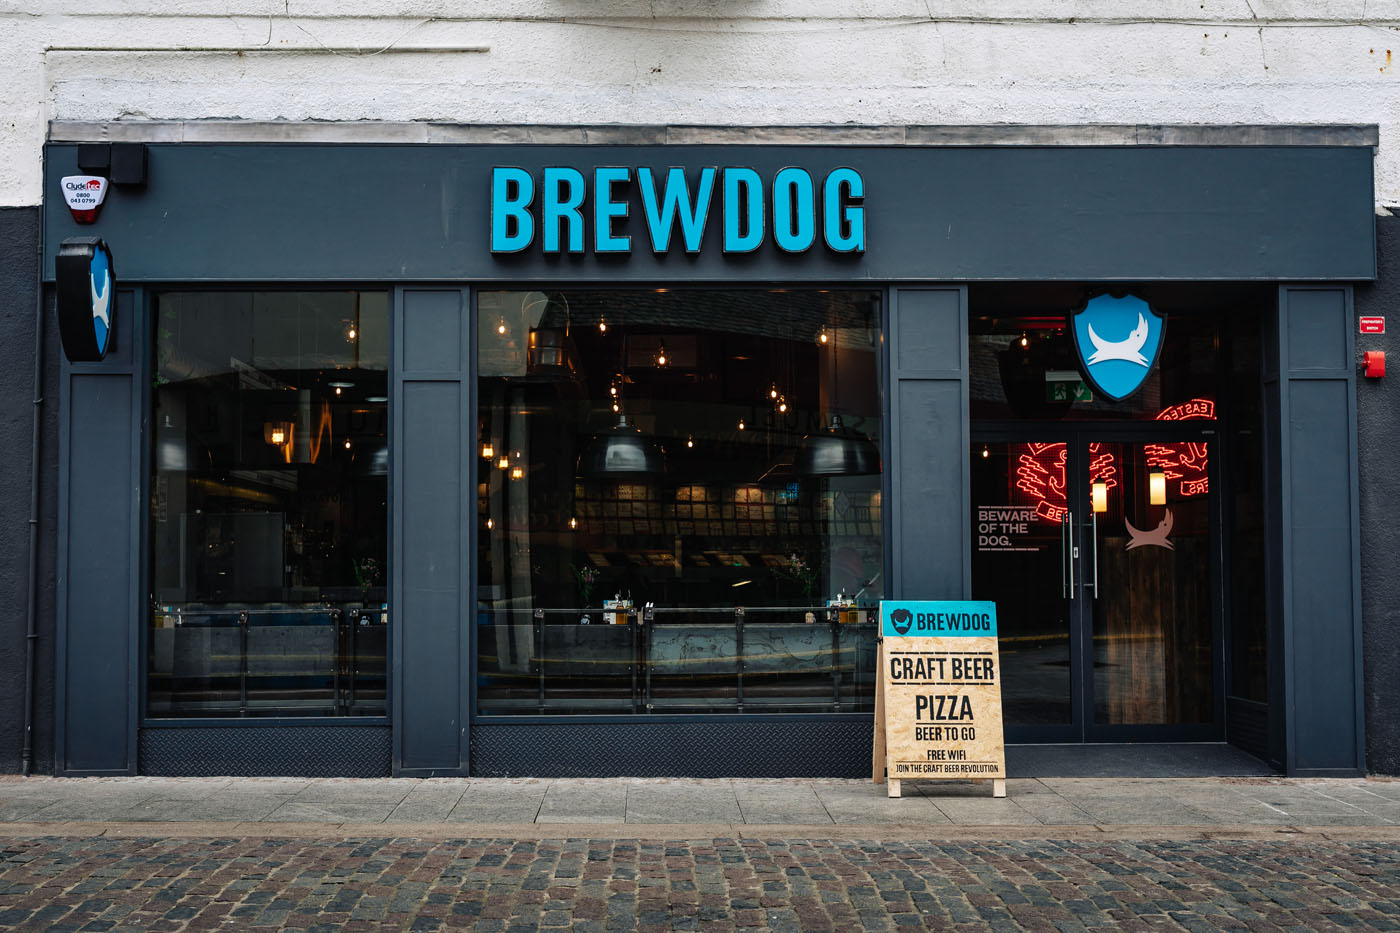 Scot Scams System To Get Cheap Beer Using Brewdog Honesty Campaign photo